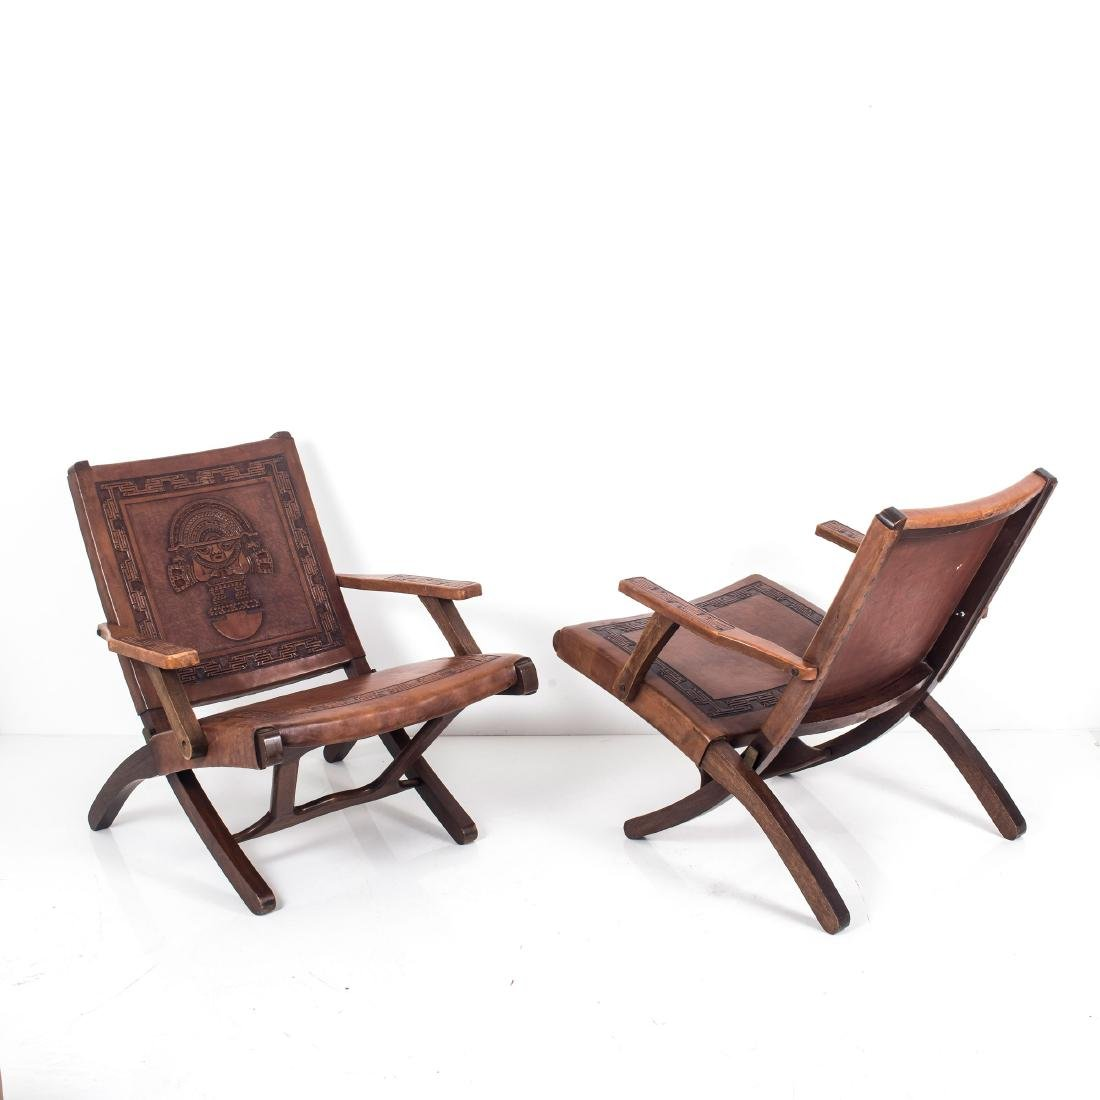 Two folding chairs, 1960s - 2